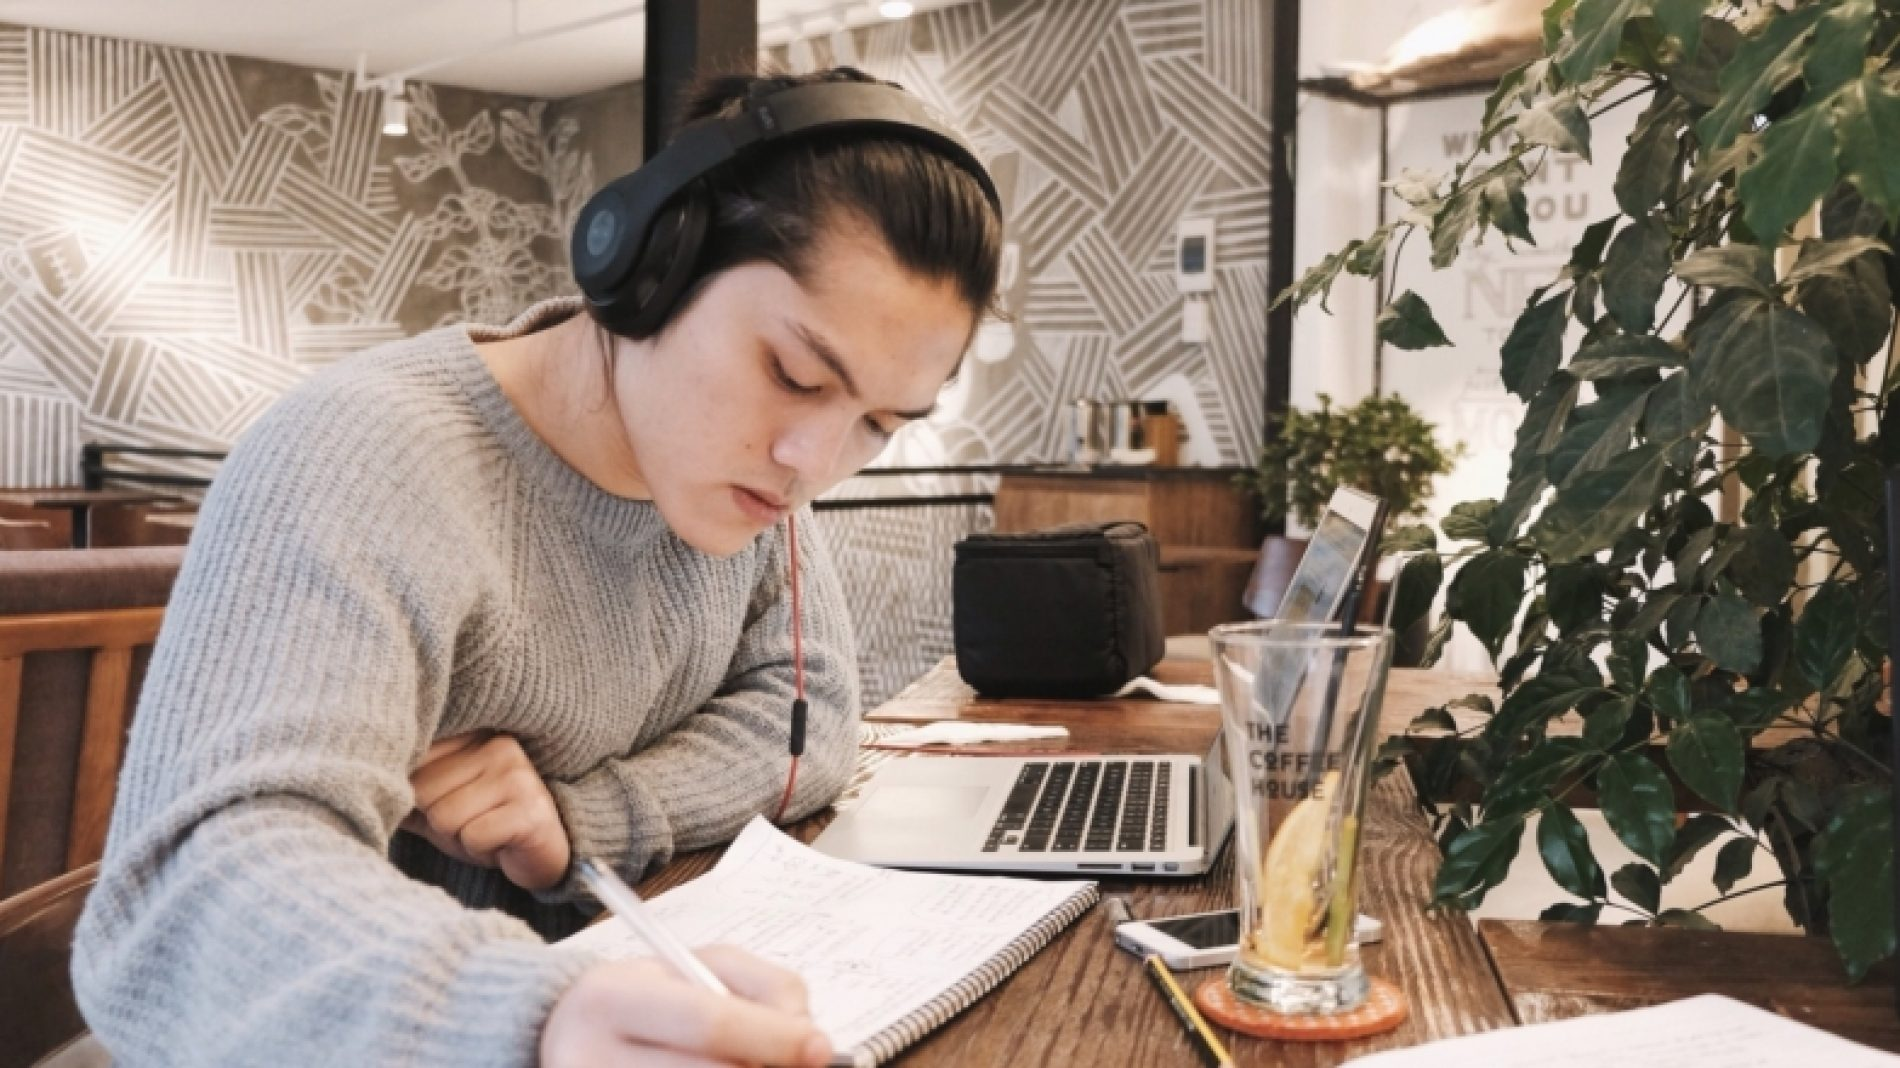 a-young-man-studying-and-listening-to-music-at-the-cafeteria_t20_d1Wbzo-vG41vI